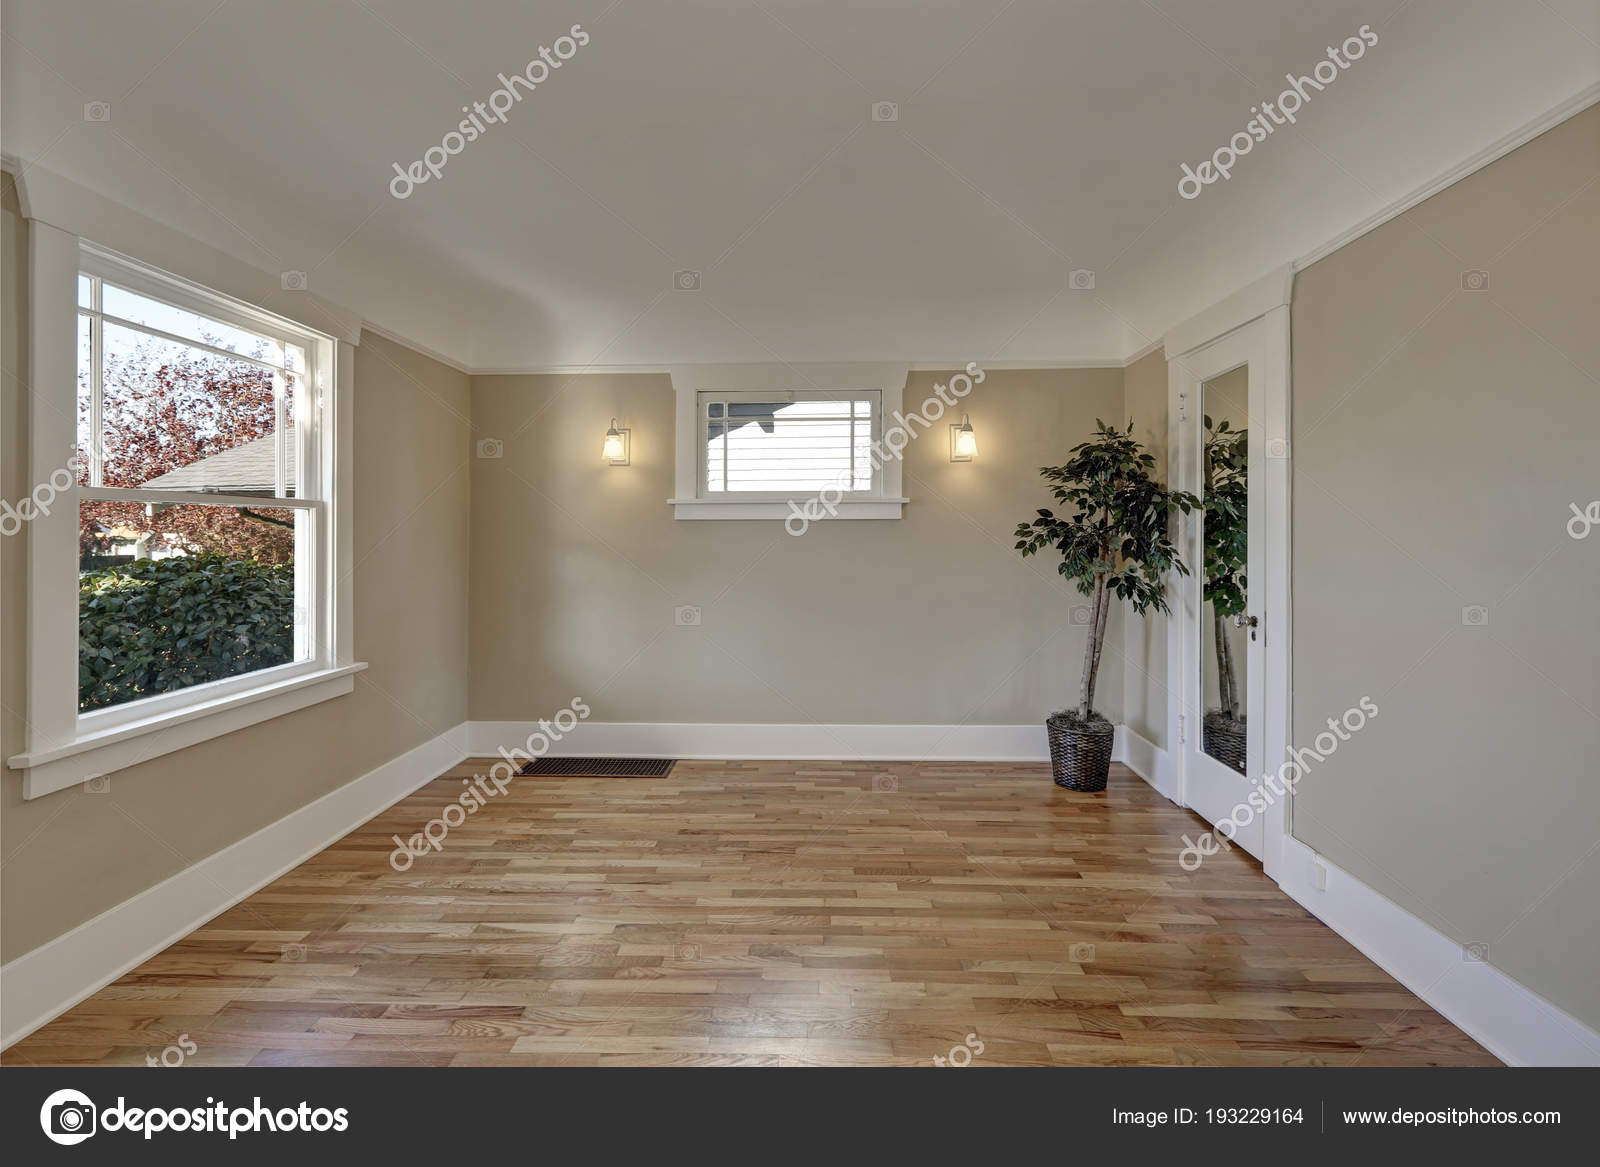 Empty Room Interior With Taupe Brown Walls Hardwood Floor Stock Photo